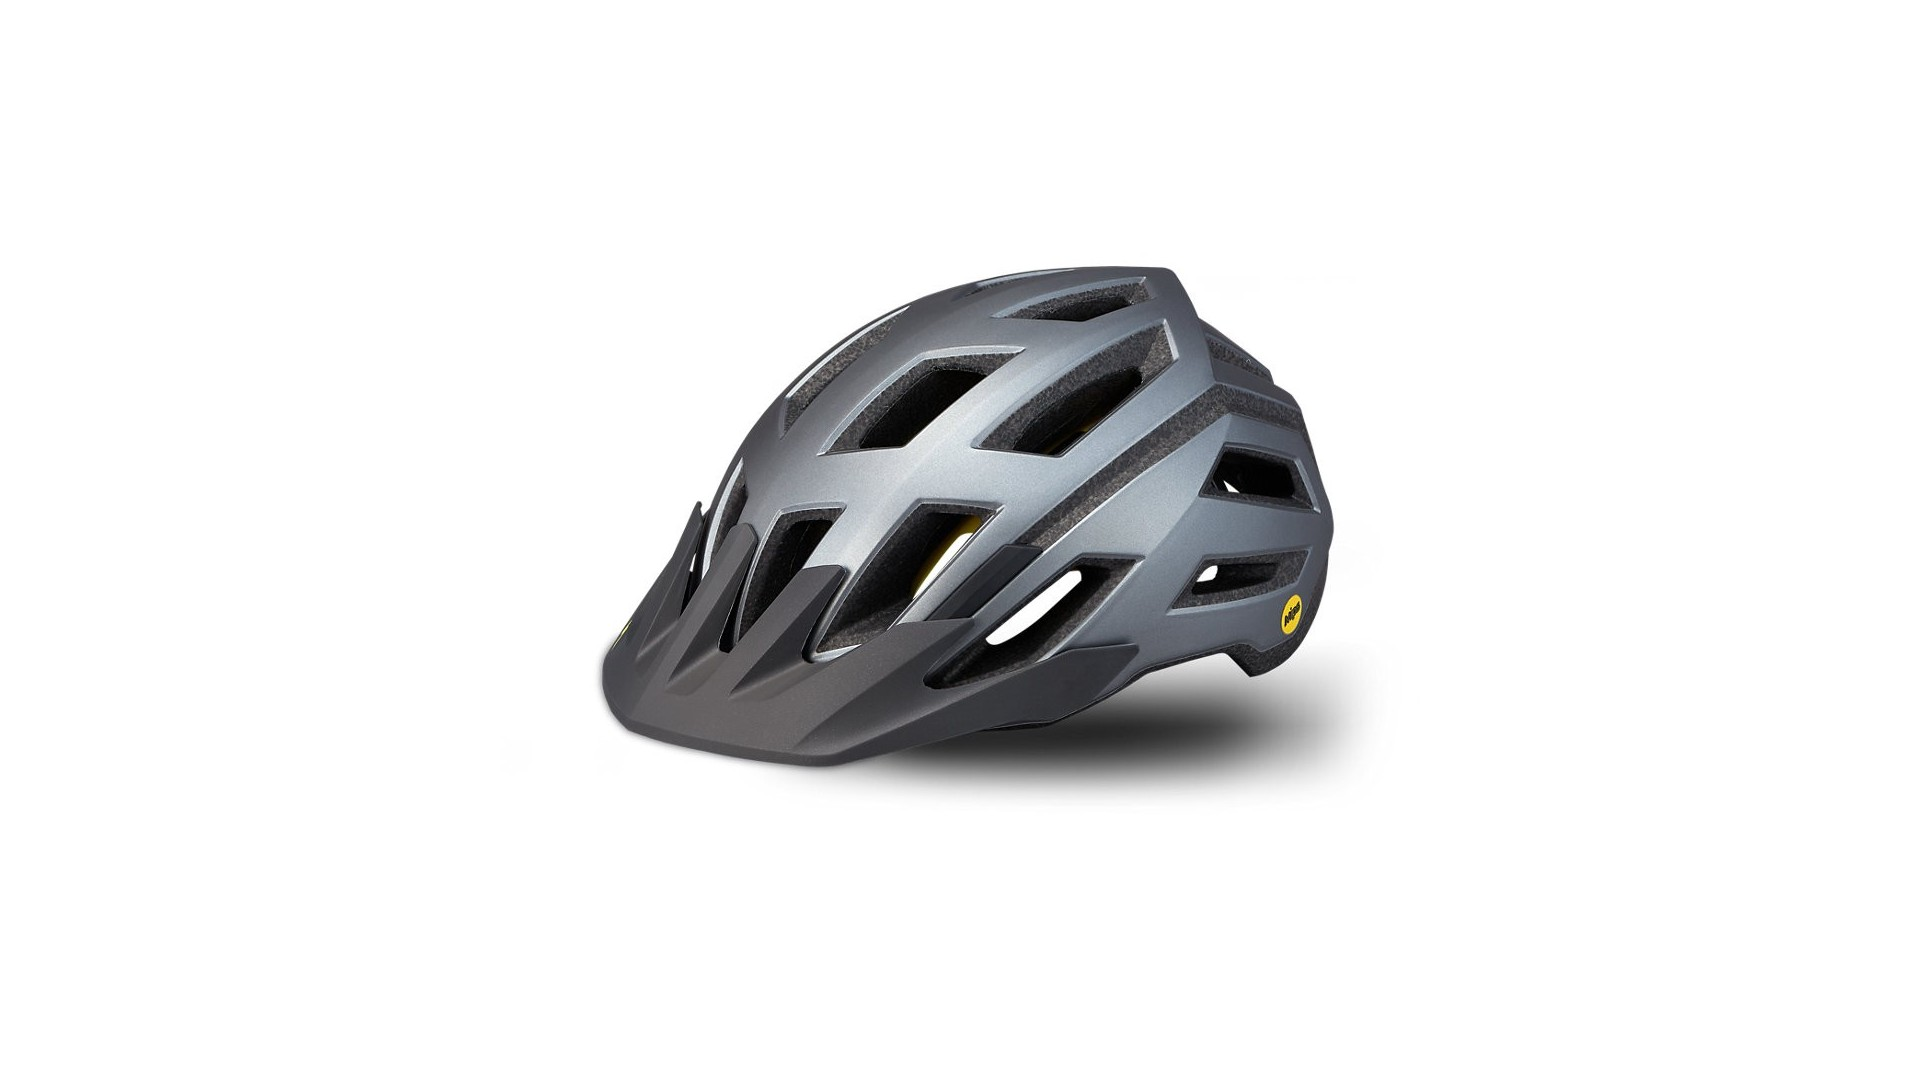 Tactic III Angi Mips Casco Ciclismo Mtb Specialized Charcoal Mate/Ion 1 IBKBike.es